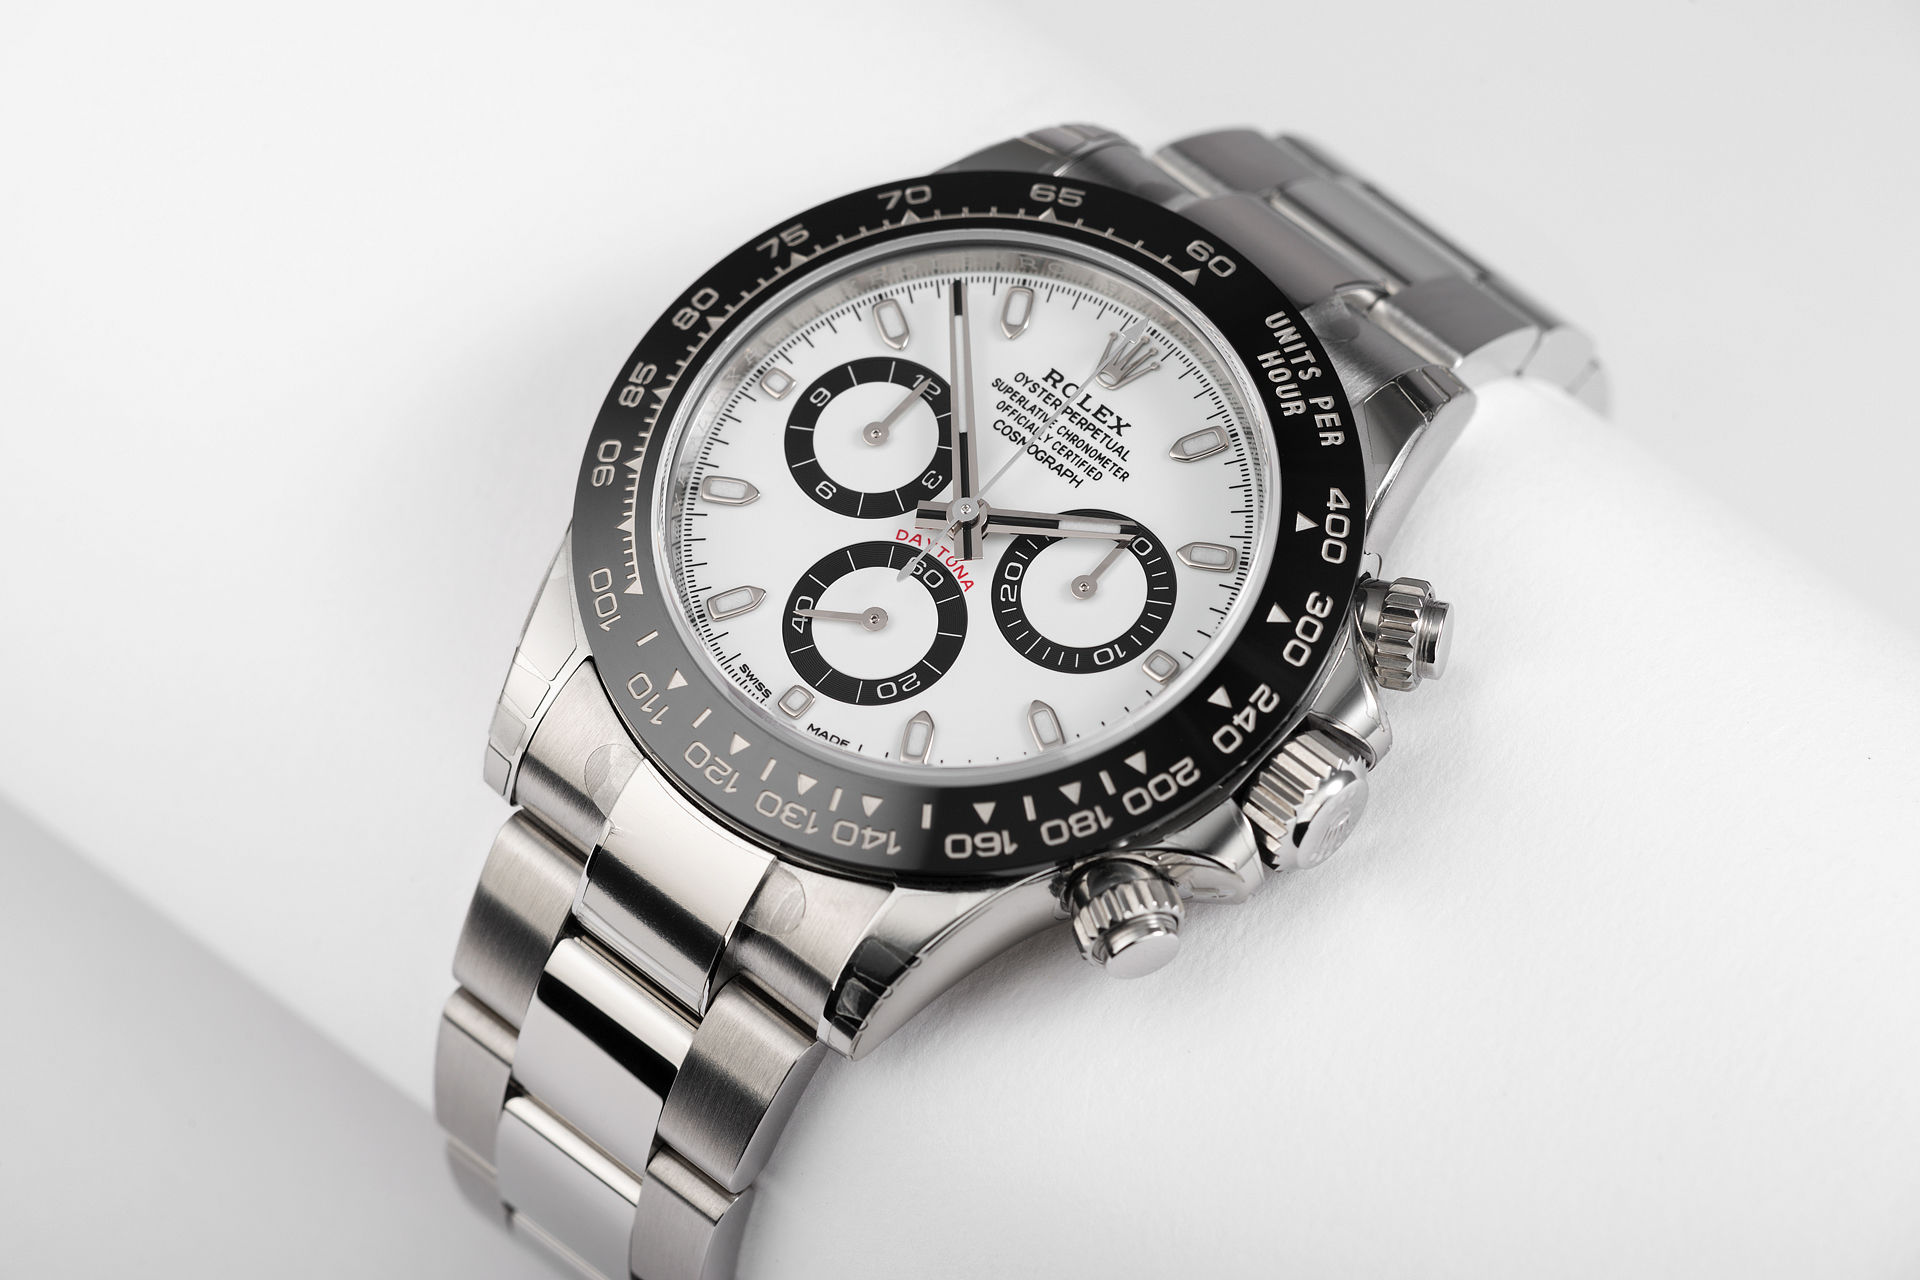 rolex cosmograph daytona watches ref 116500ln brand. Black Bedroom Furniture Sets. Home Design Ideas